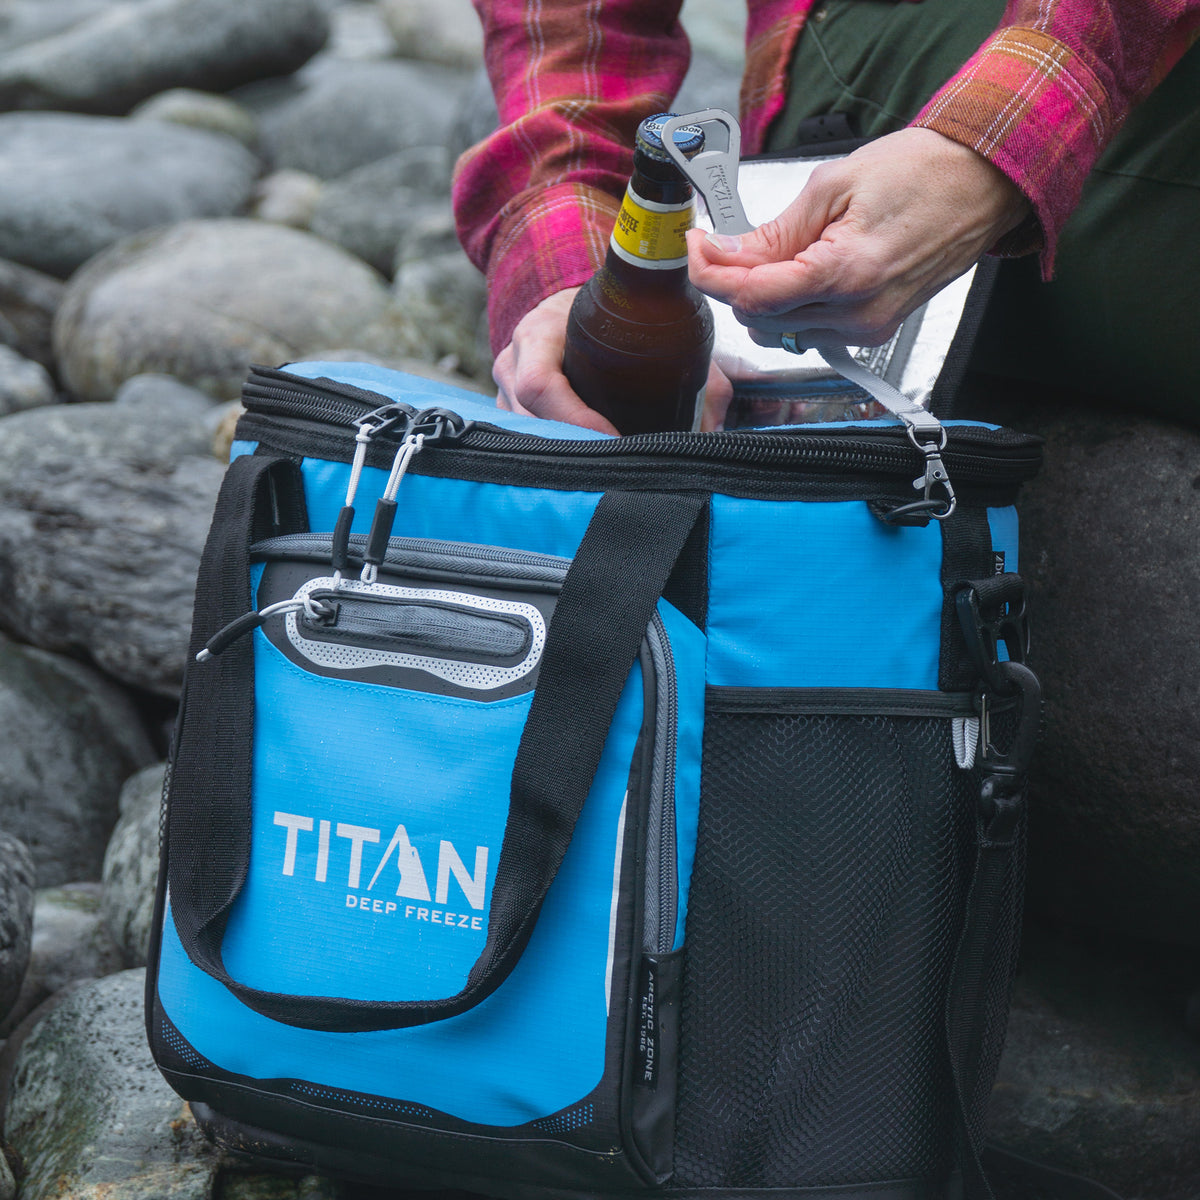 Titan Deep Freeze® 24 Can Bucket Tote - Blue - Lifestyle, grabbing and opening opening a bottle